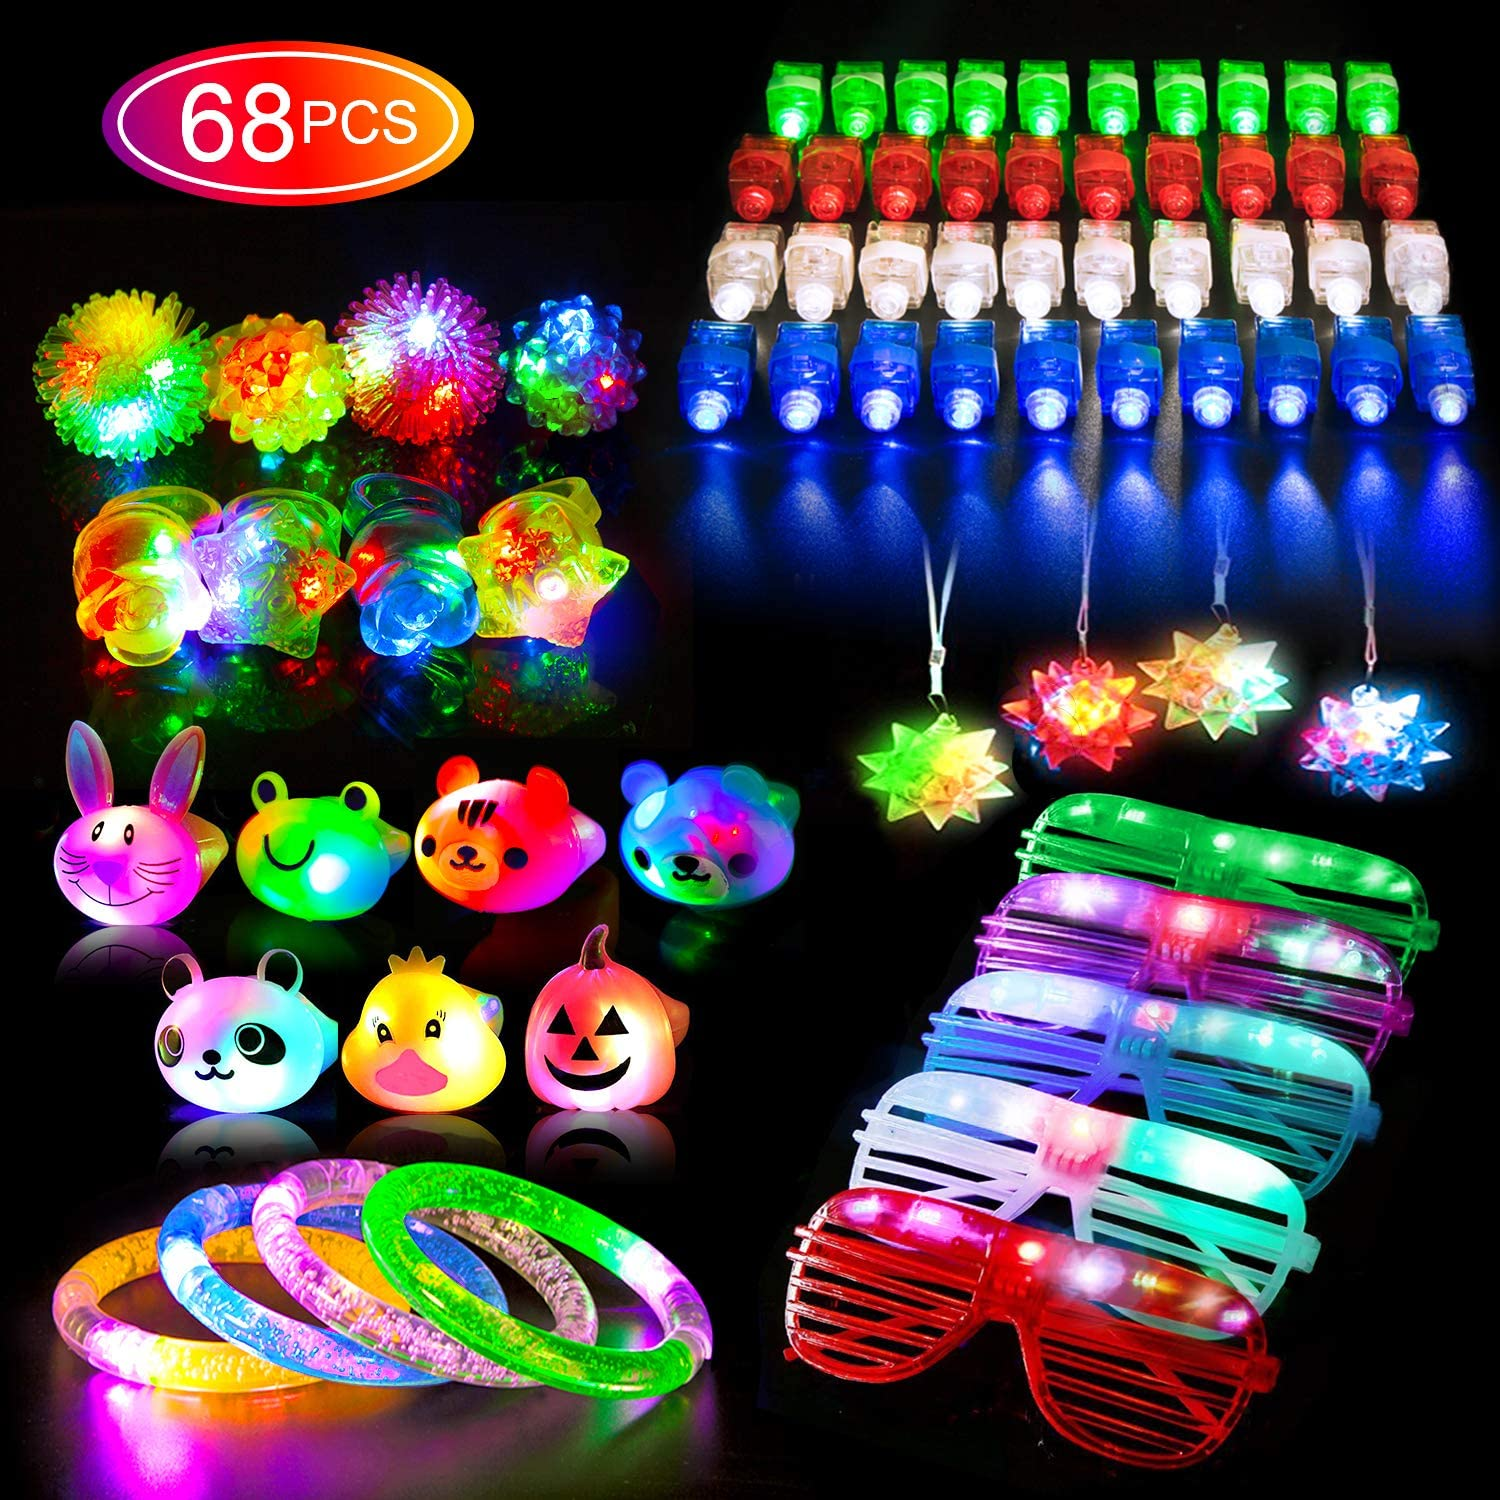 68PCS LED Light Up Toys Party Favors for Kids/Adults, Glow in the Dark Party Supplies include 40 Finger Lights, 8 Jelly Rings, 7 Light Up Animals Rings, 5 Led Glasses, 4 Bracelets, 4 Led Crystal Necklaces